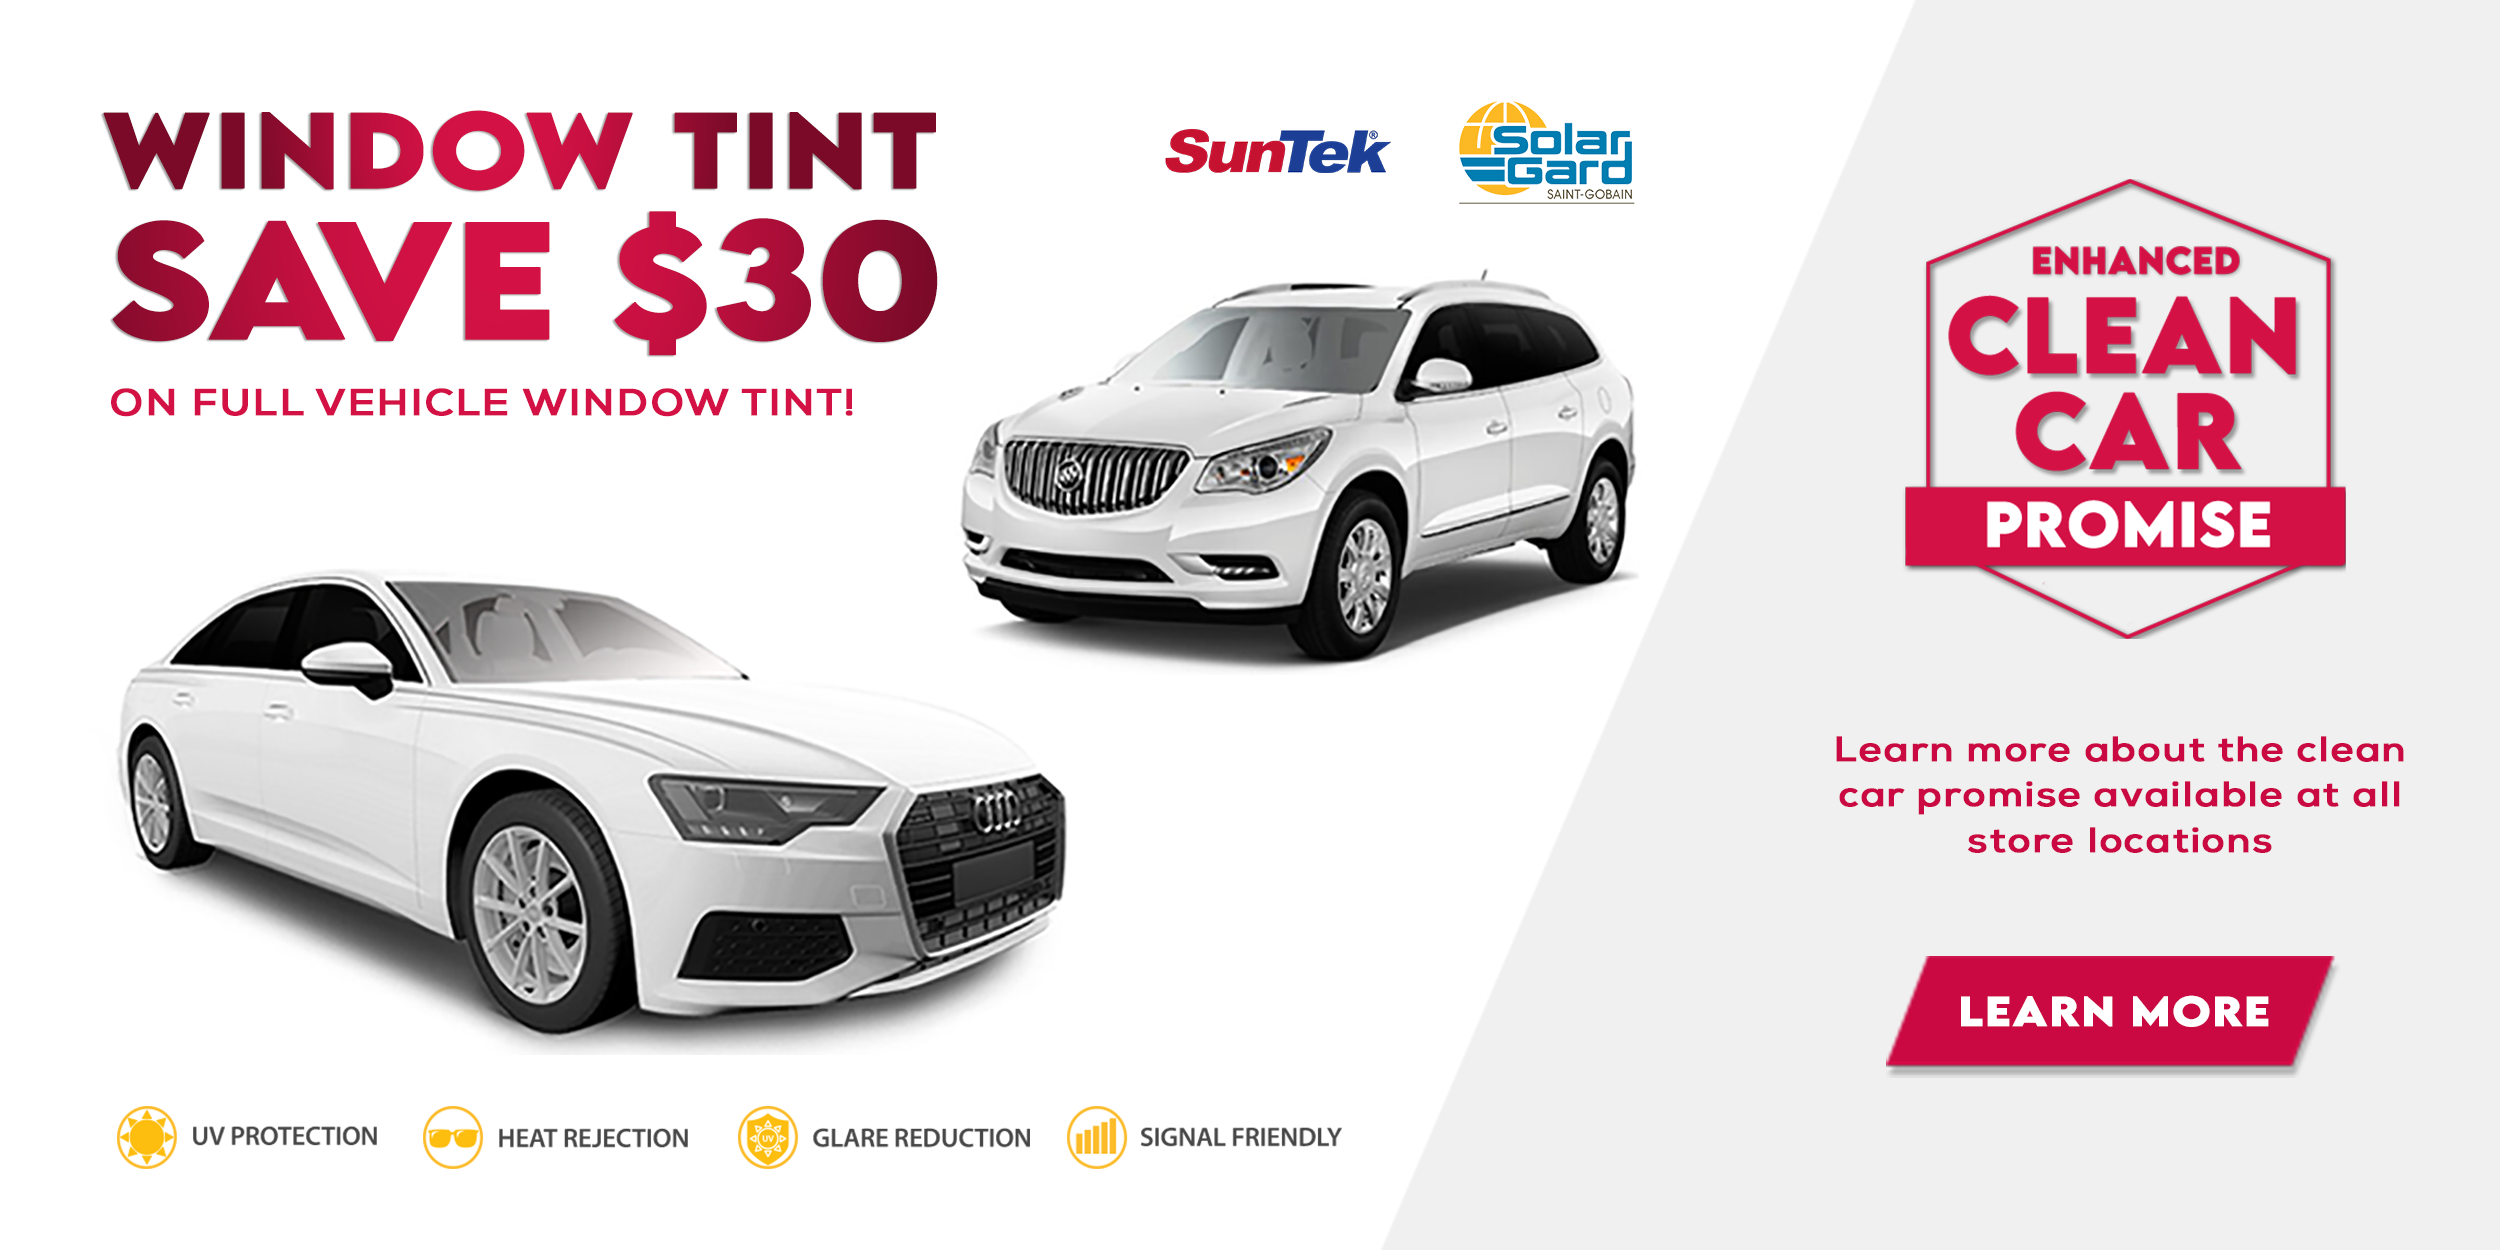 Window Tint Save $30